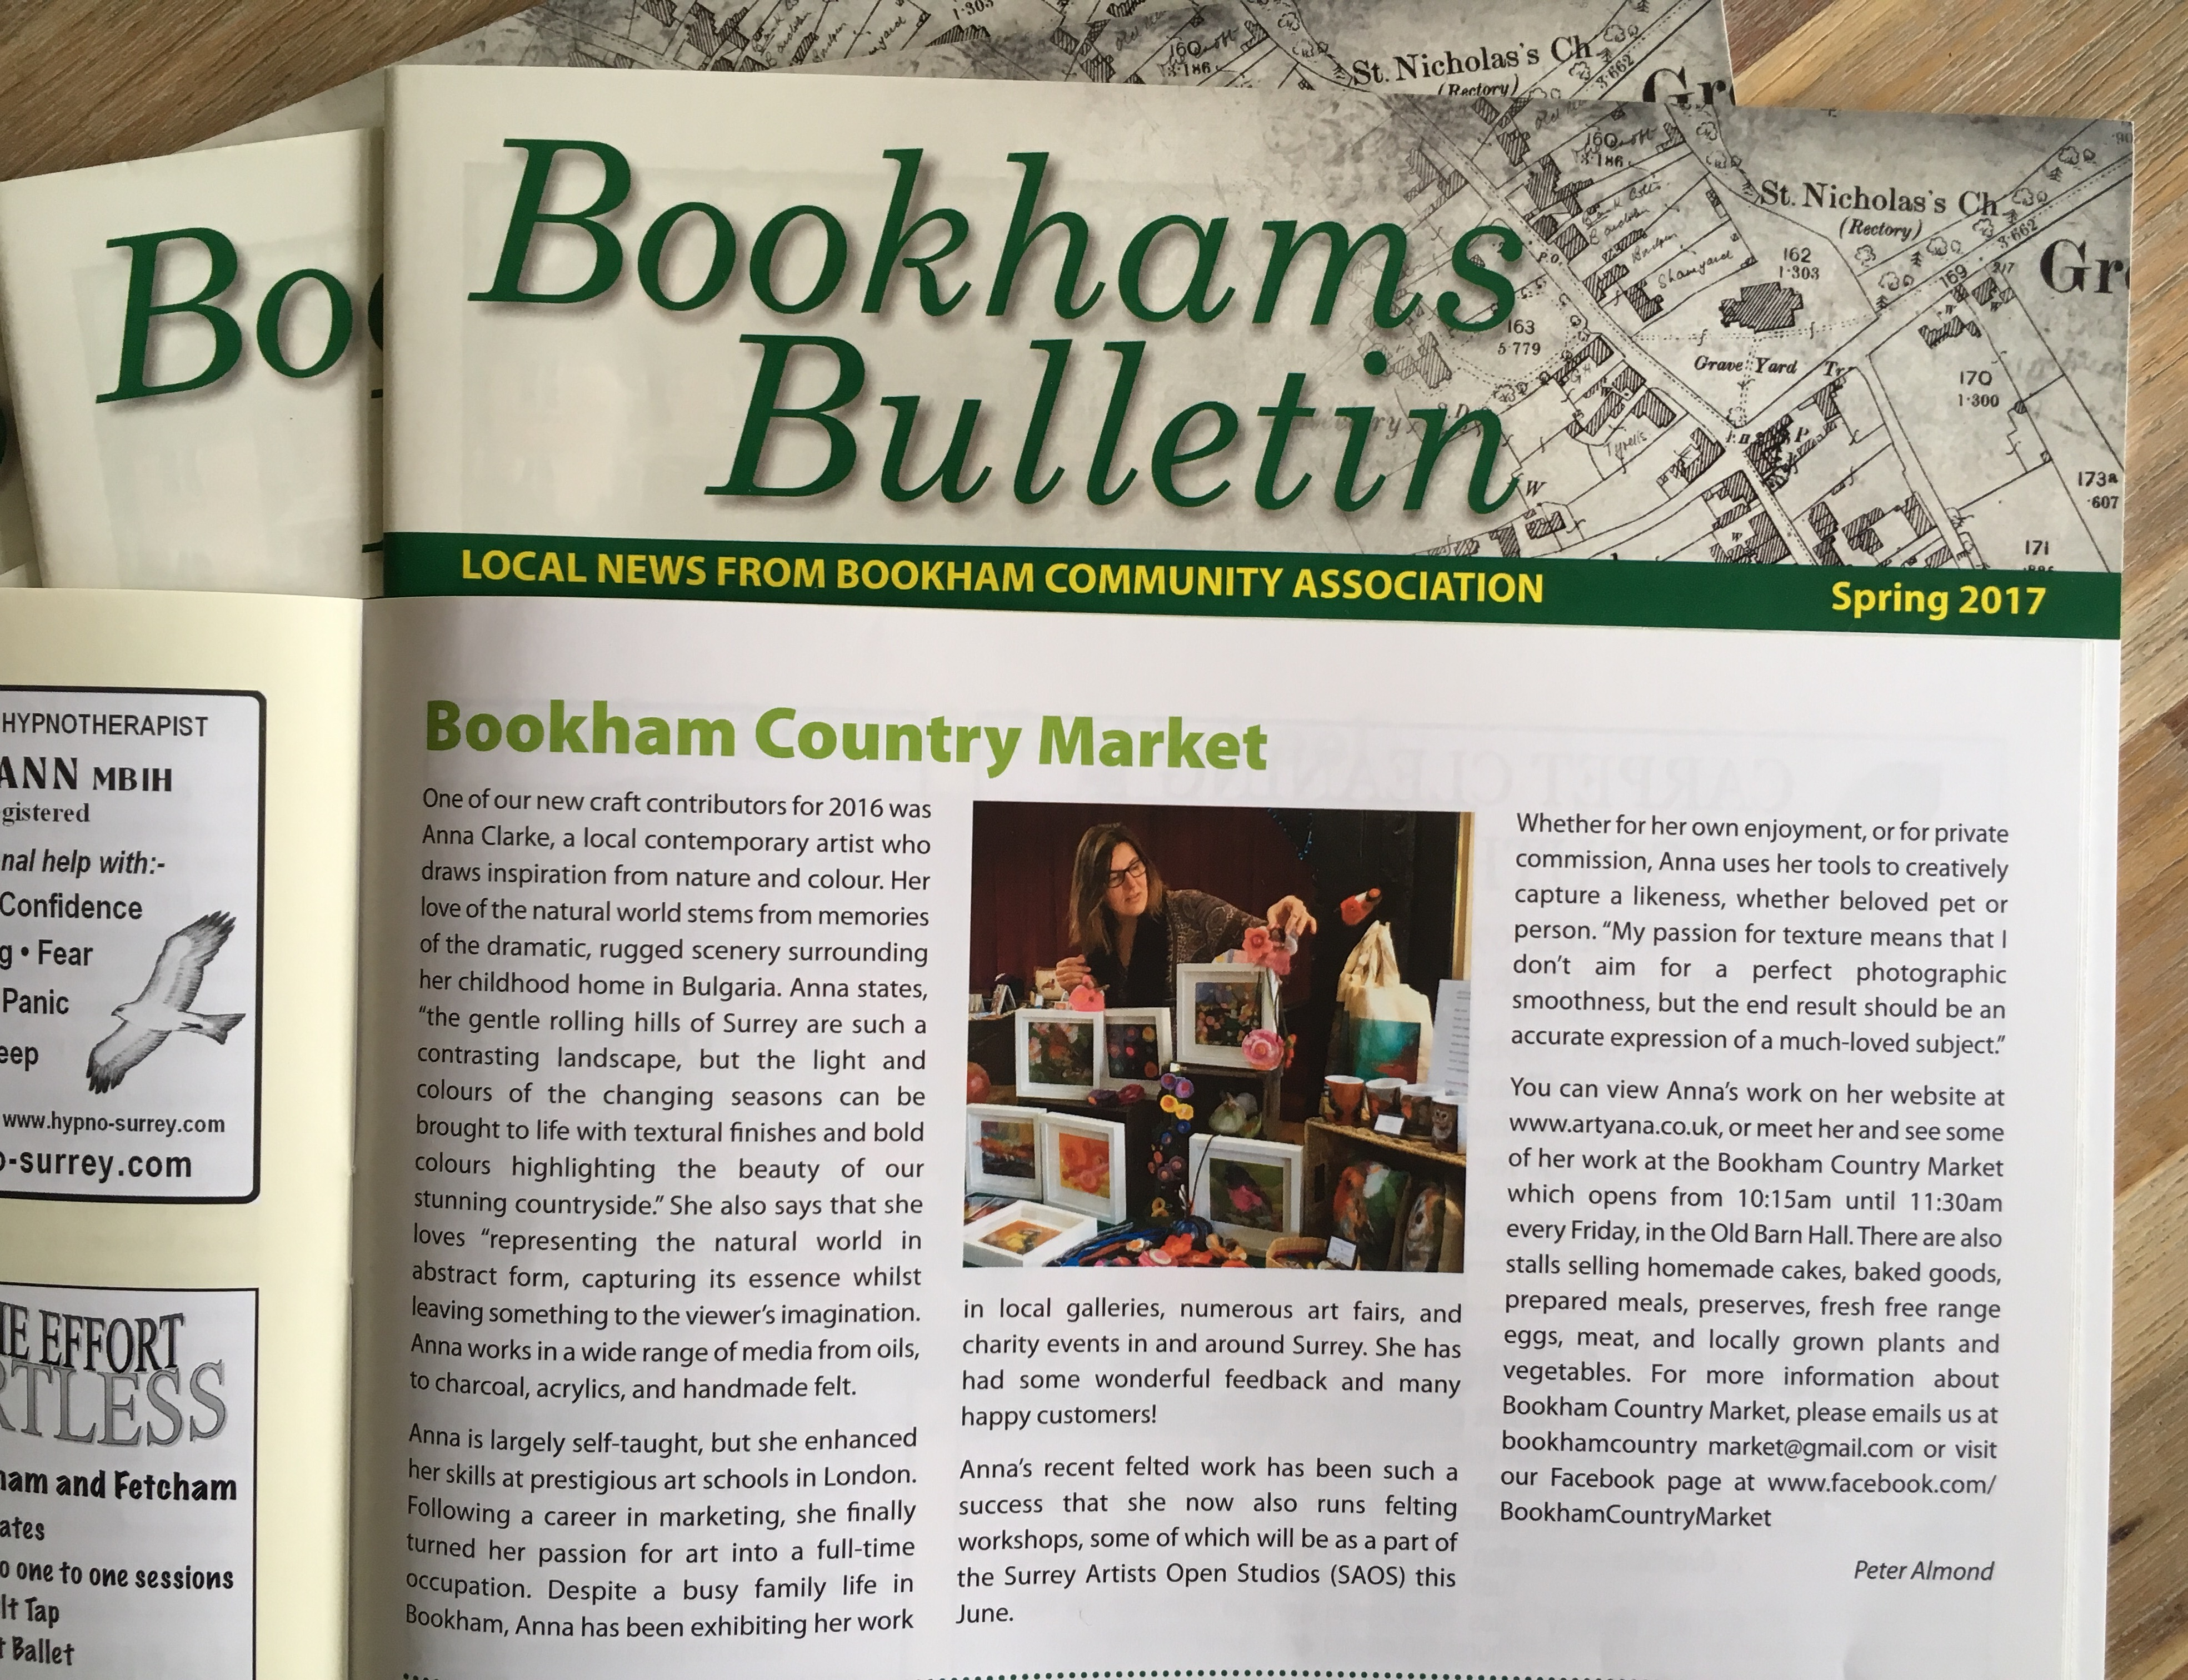 Bookham Bulletin Article